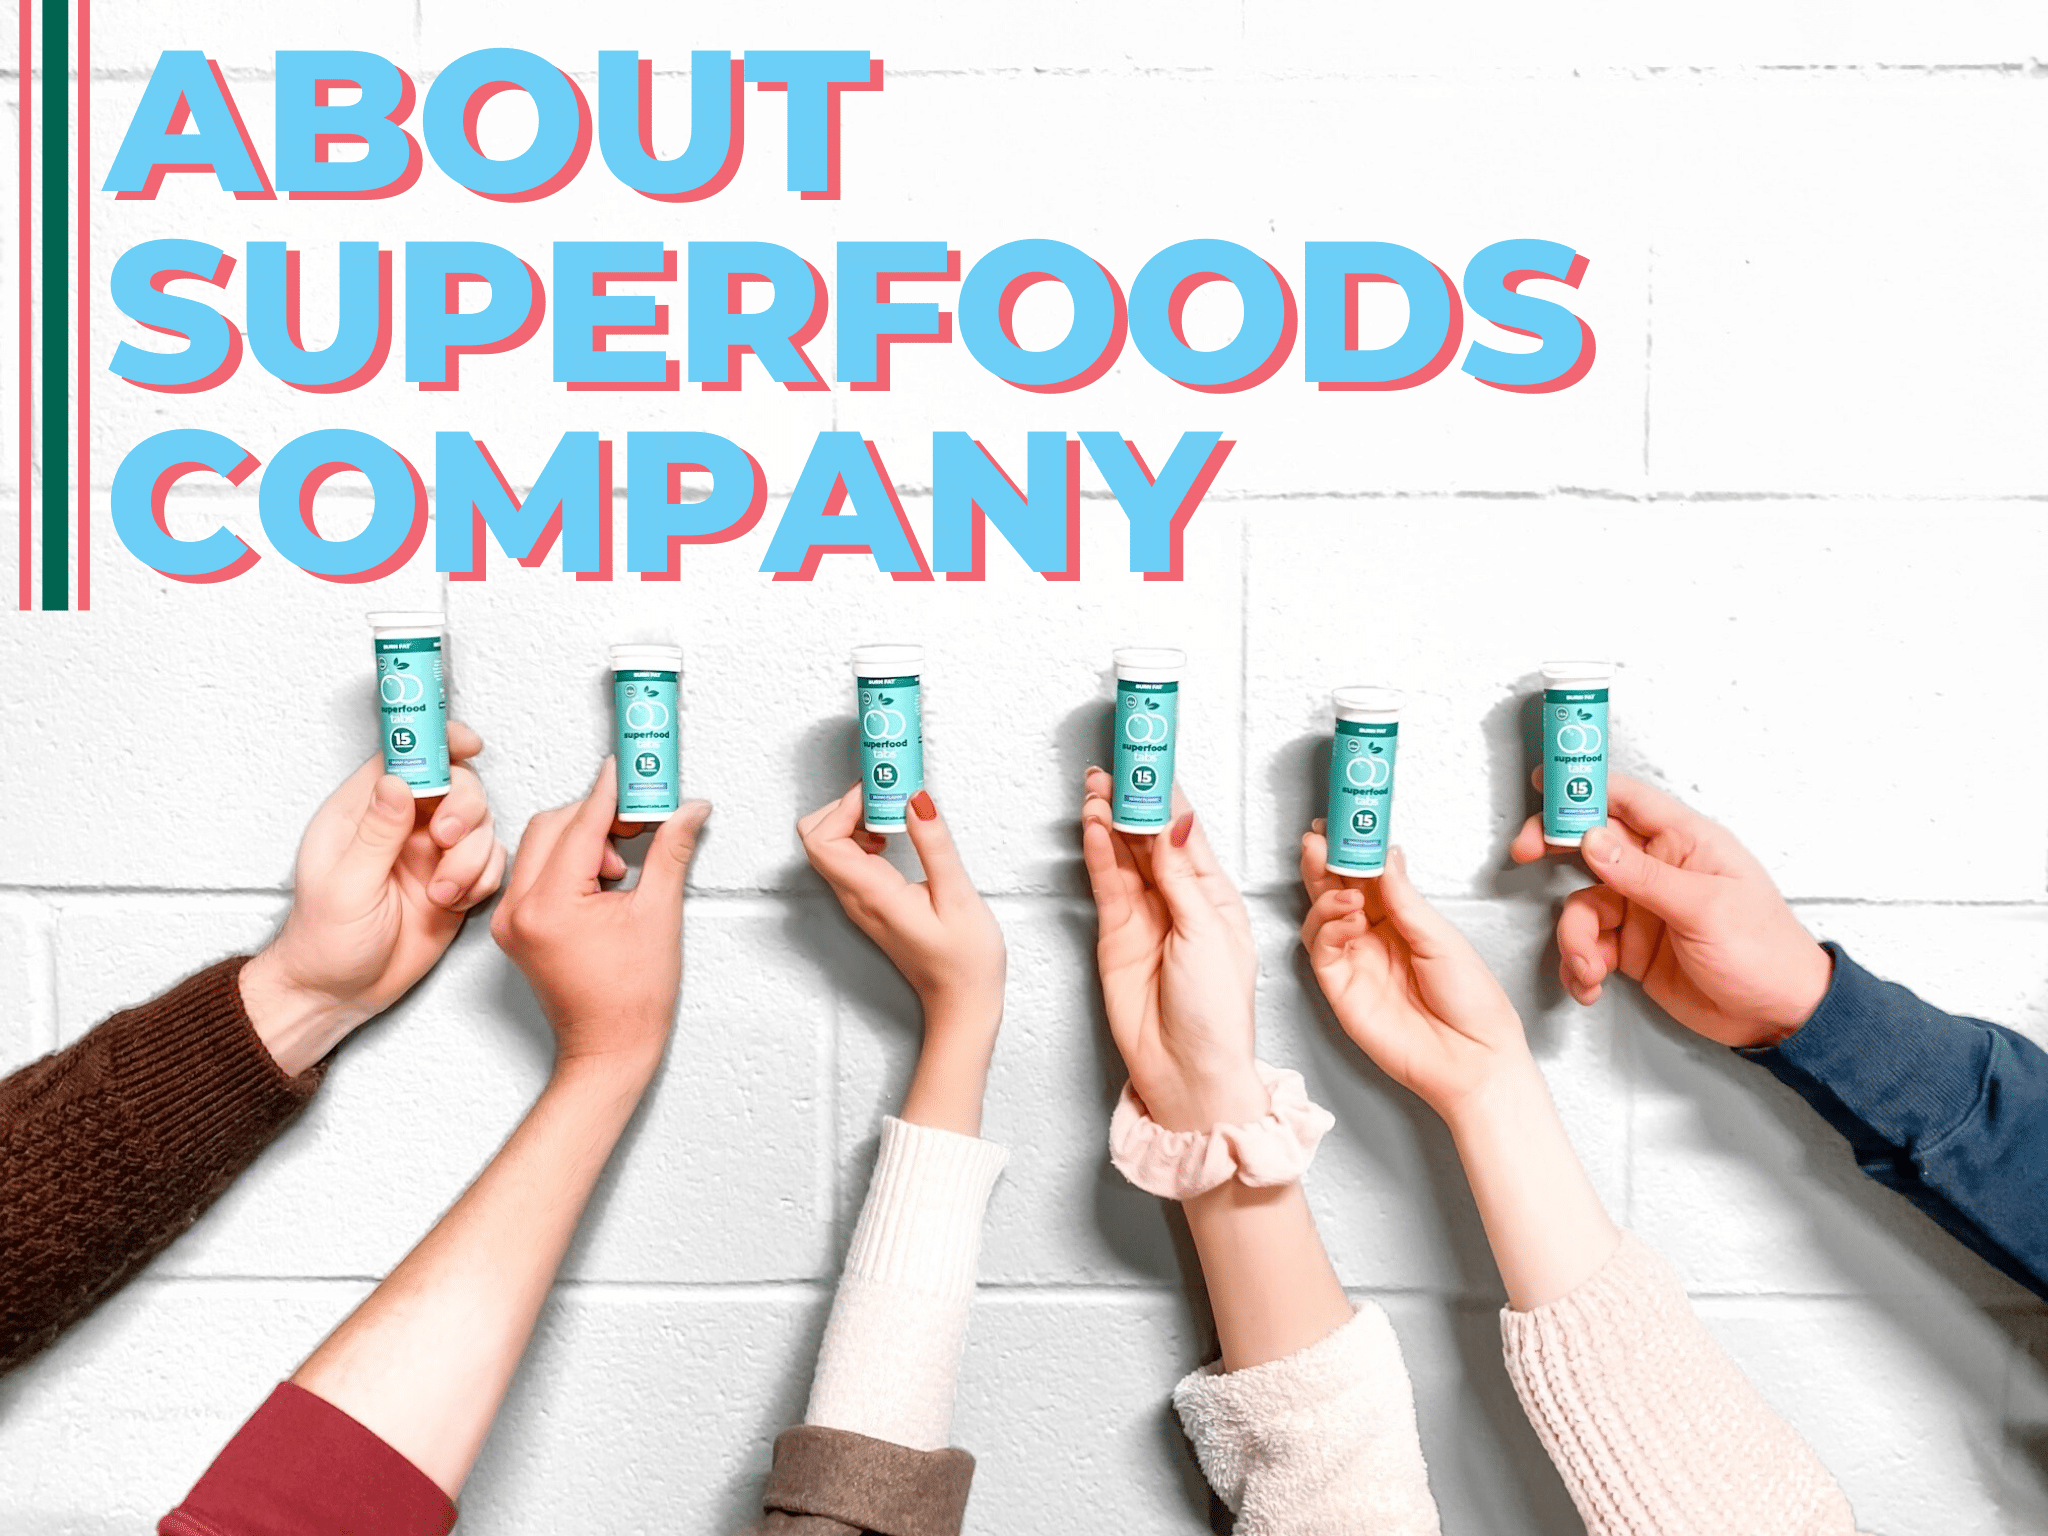 About Superfoods Company